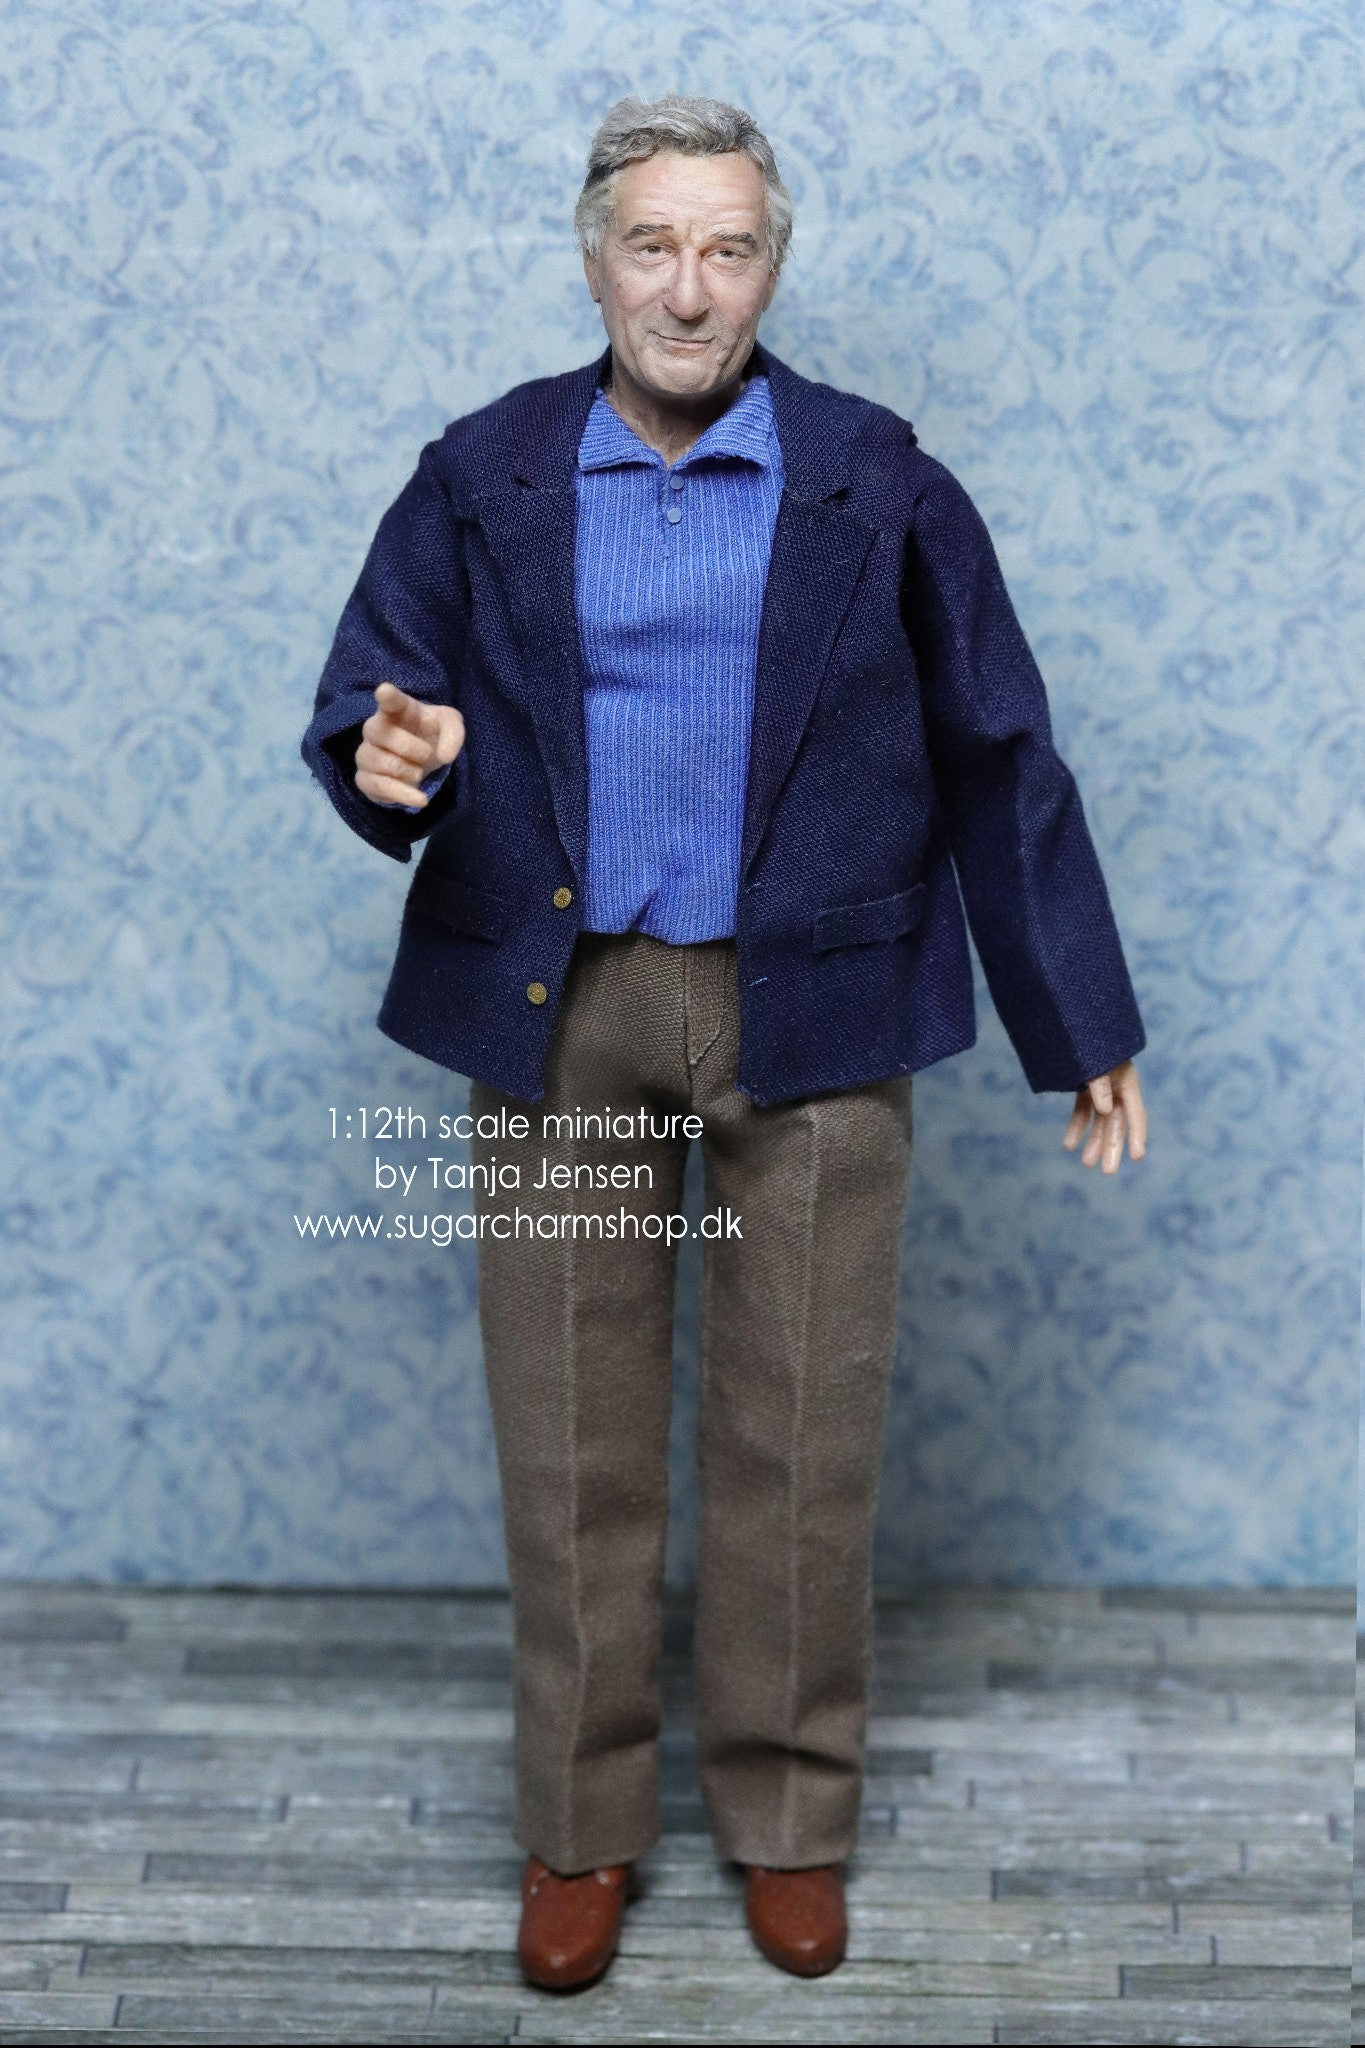 Robert De Niro 1:12th scale miniature doll